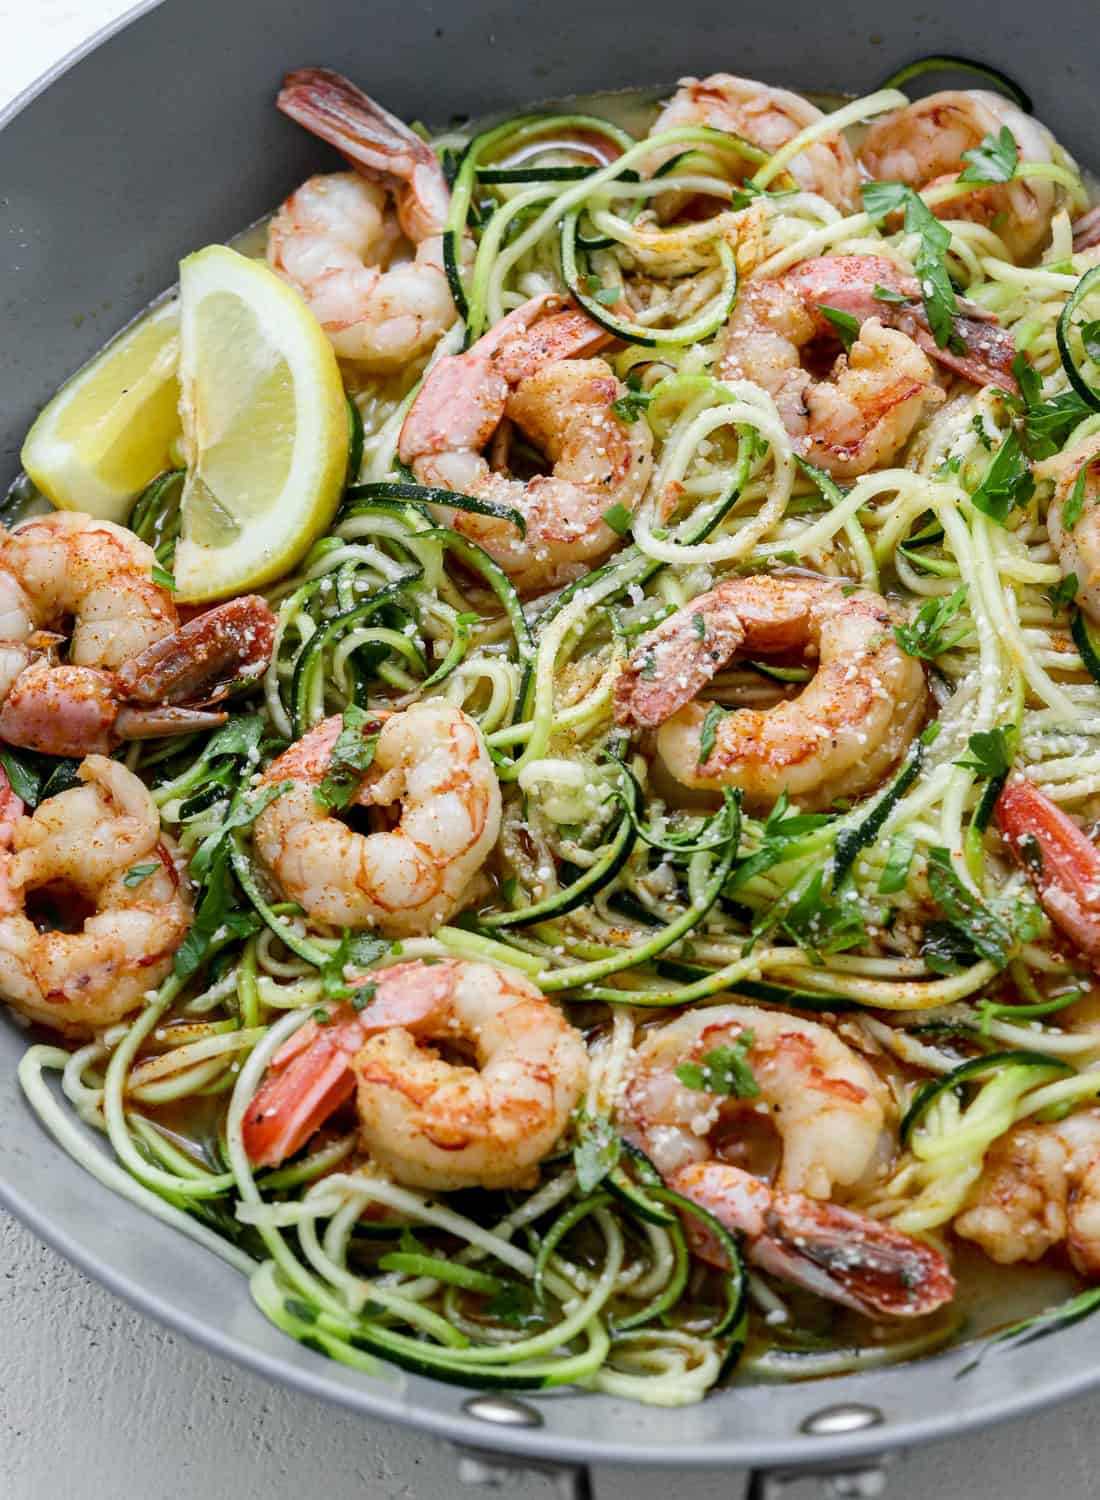 Round grey pan with cooked healthy shrimp scampi with zucchini noodles with lime wedges on the side of the pan and parmesan on top of the shrimp.